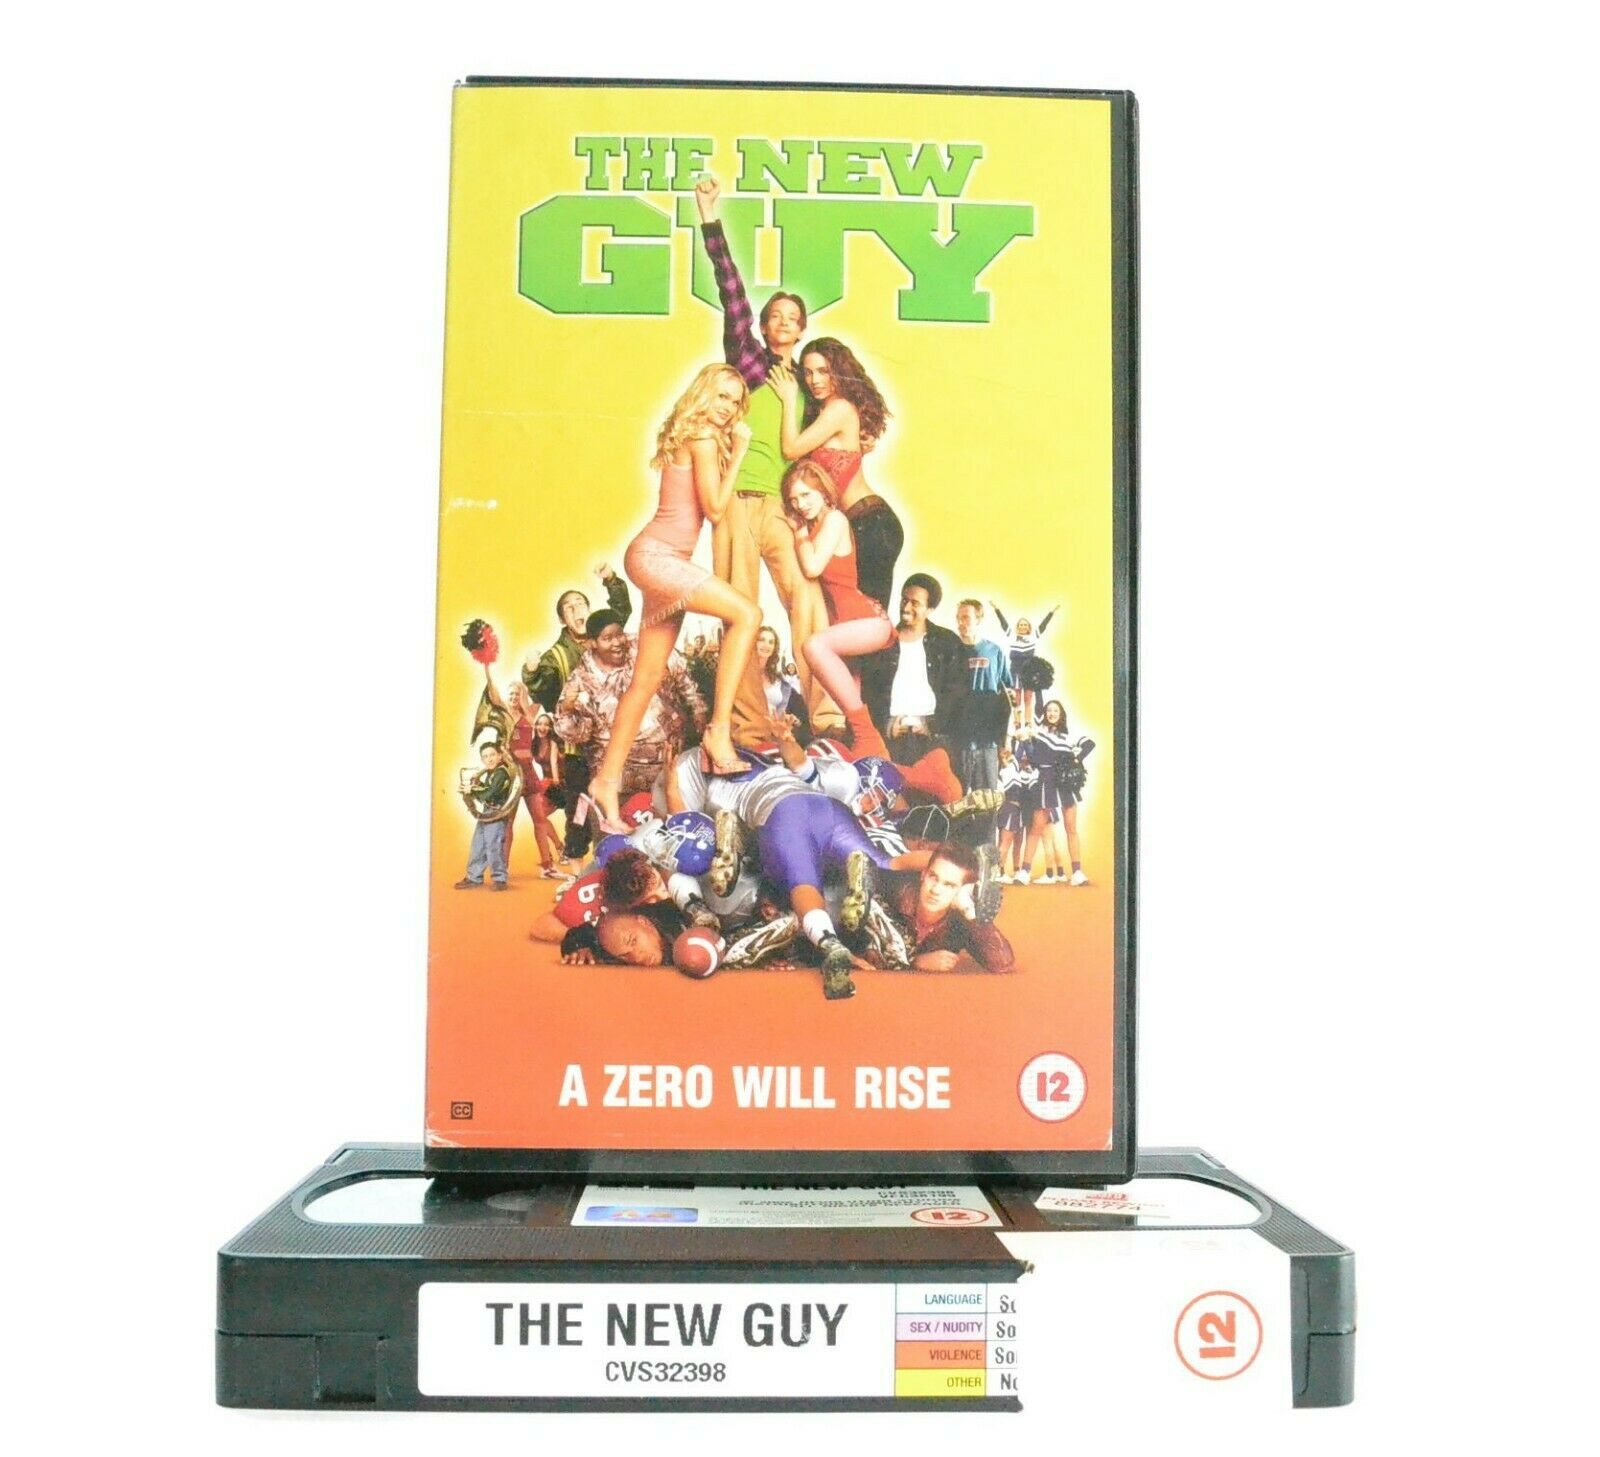 The New Guy - Teen Comedy - Large Box - Ex-Rental - High School Loser - Pal VHS